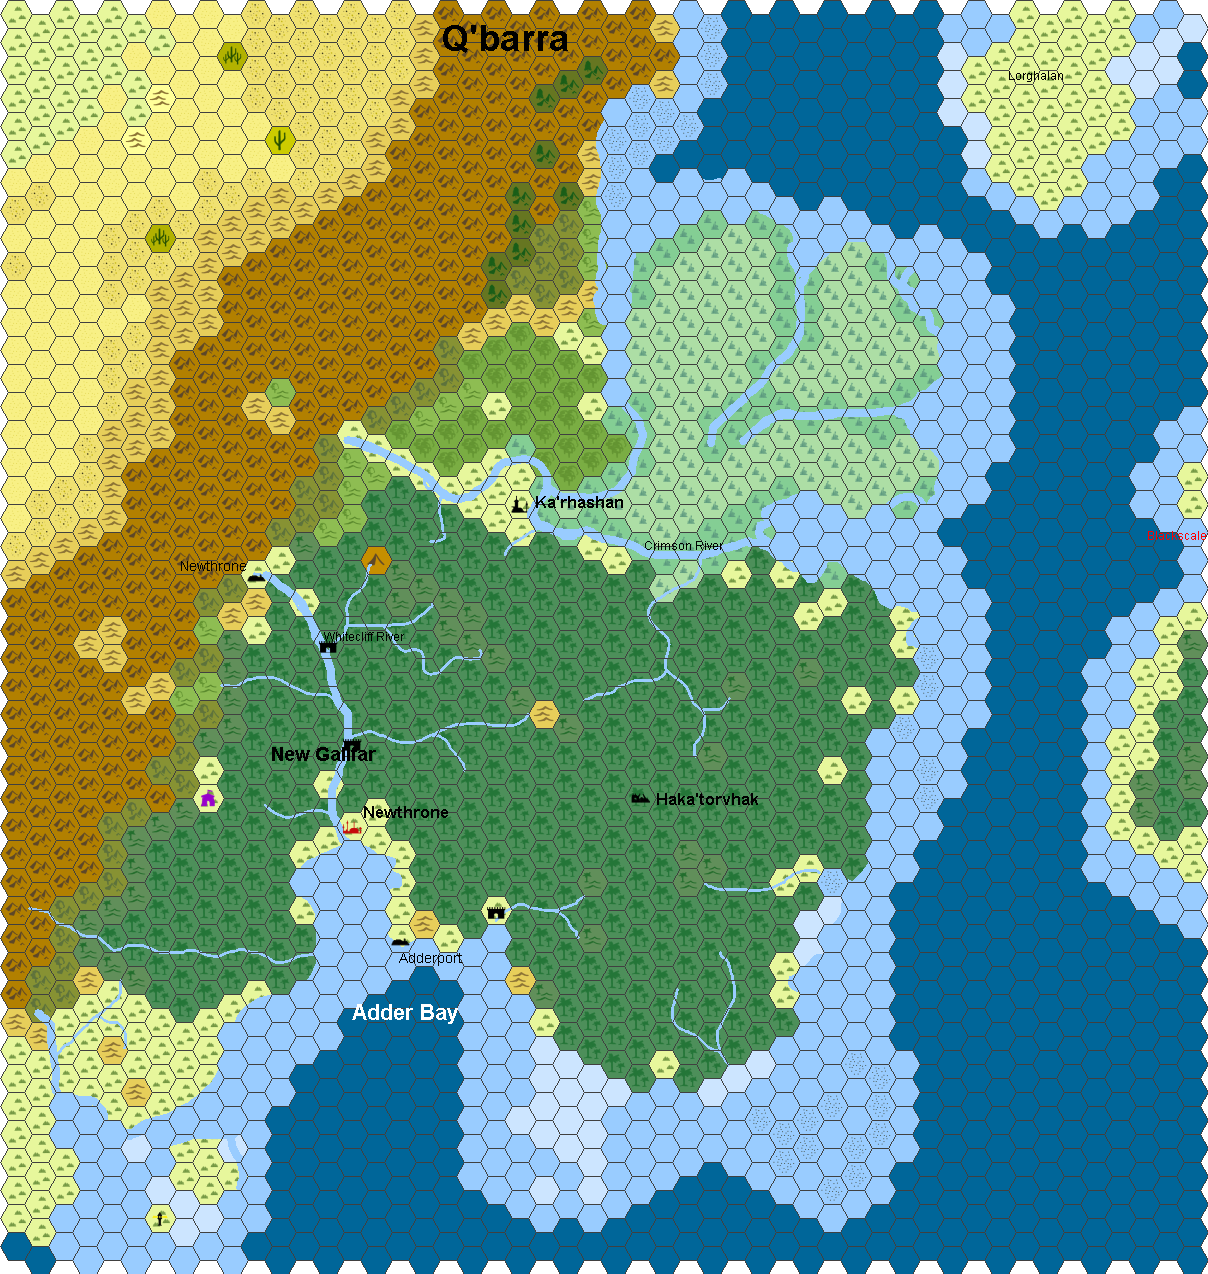 Sample Hexographer Map